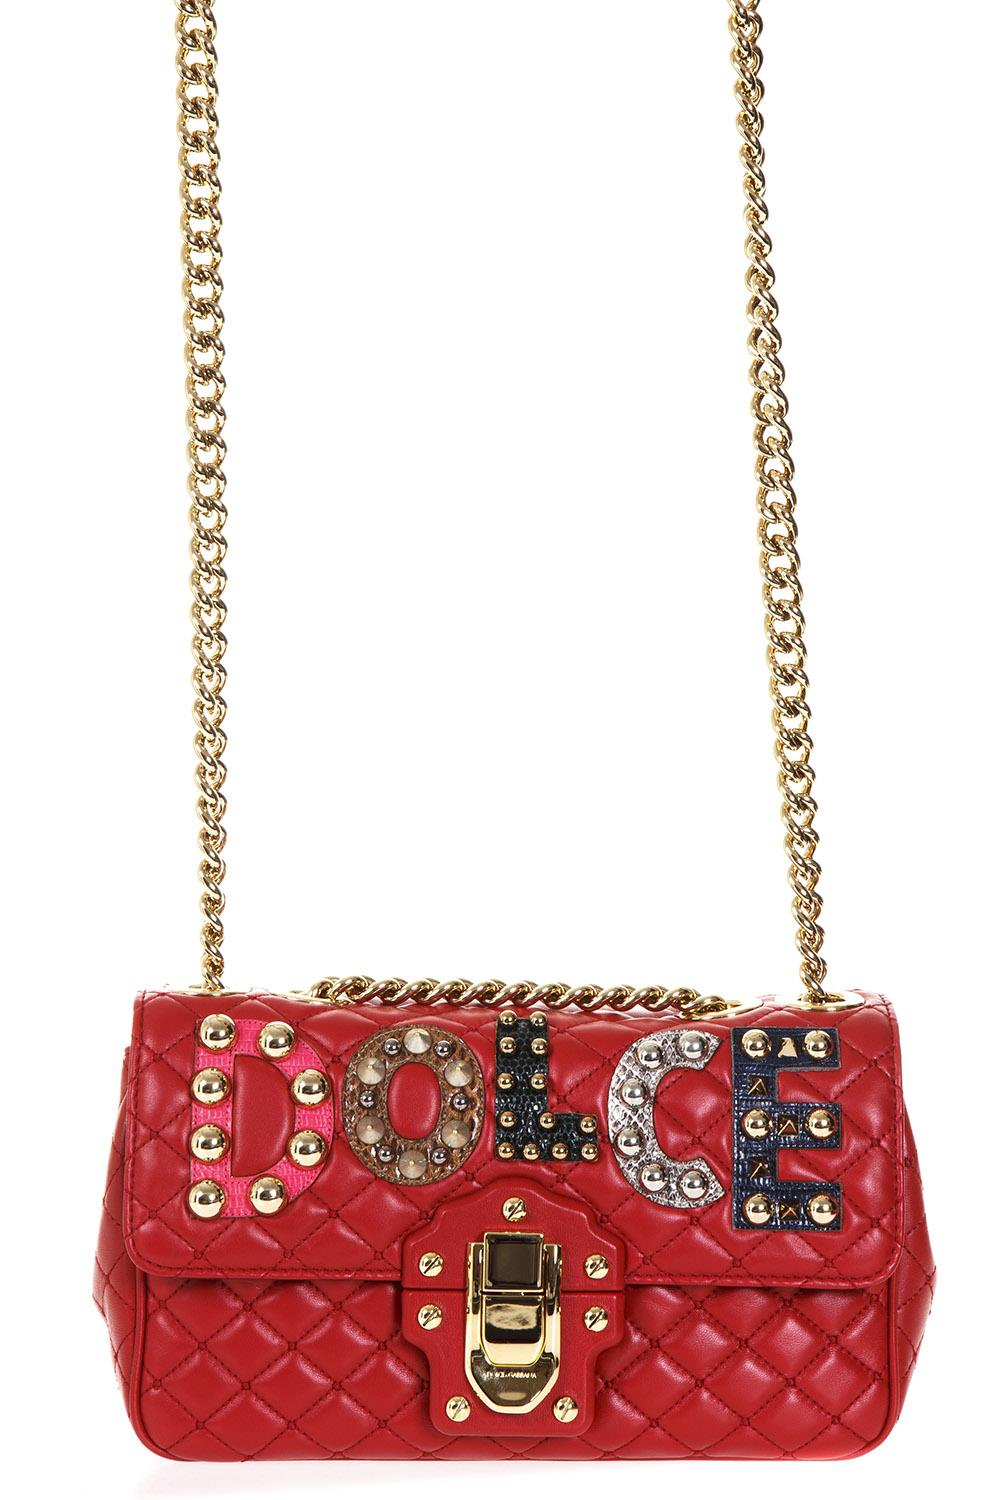 5a462e4601 QUILTED LEATHER LUCIA SHOULDER BAG WITH PATCH FW17 - DOLCE   GABBANA -  Boutique Galiano